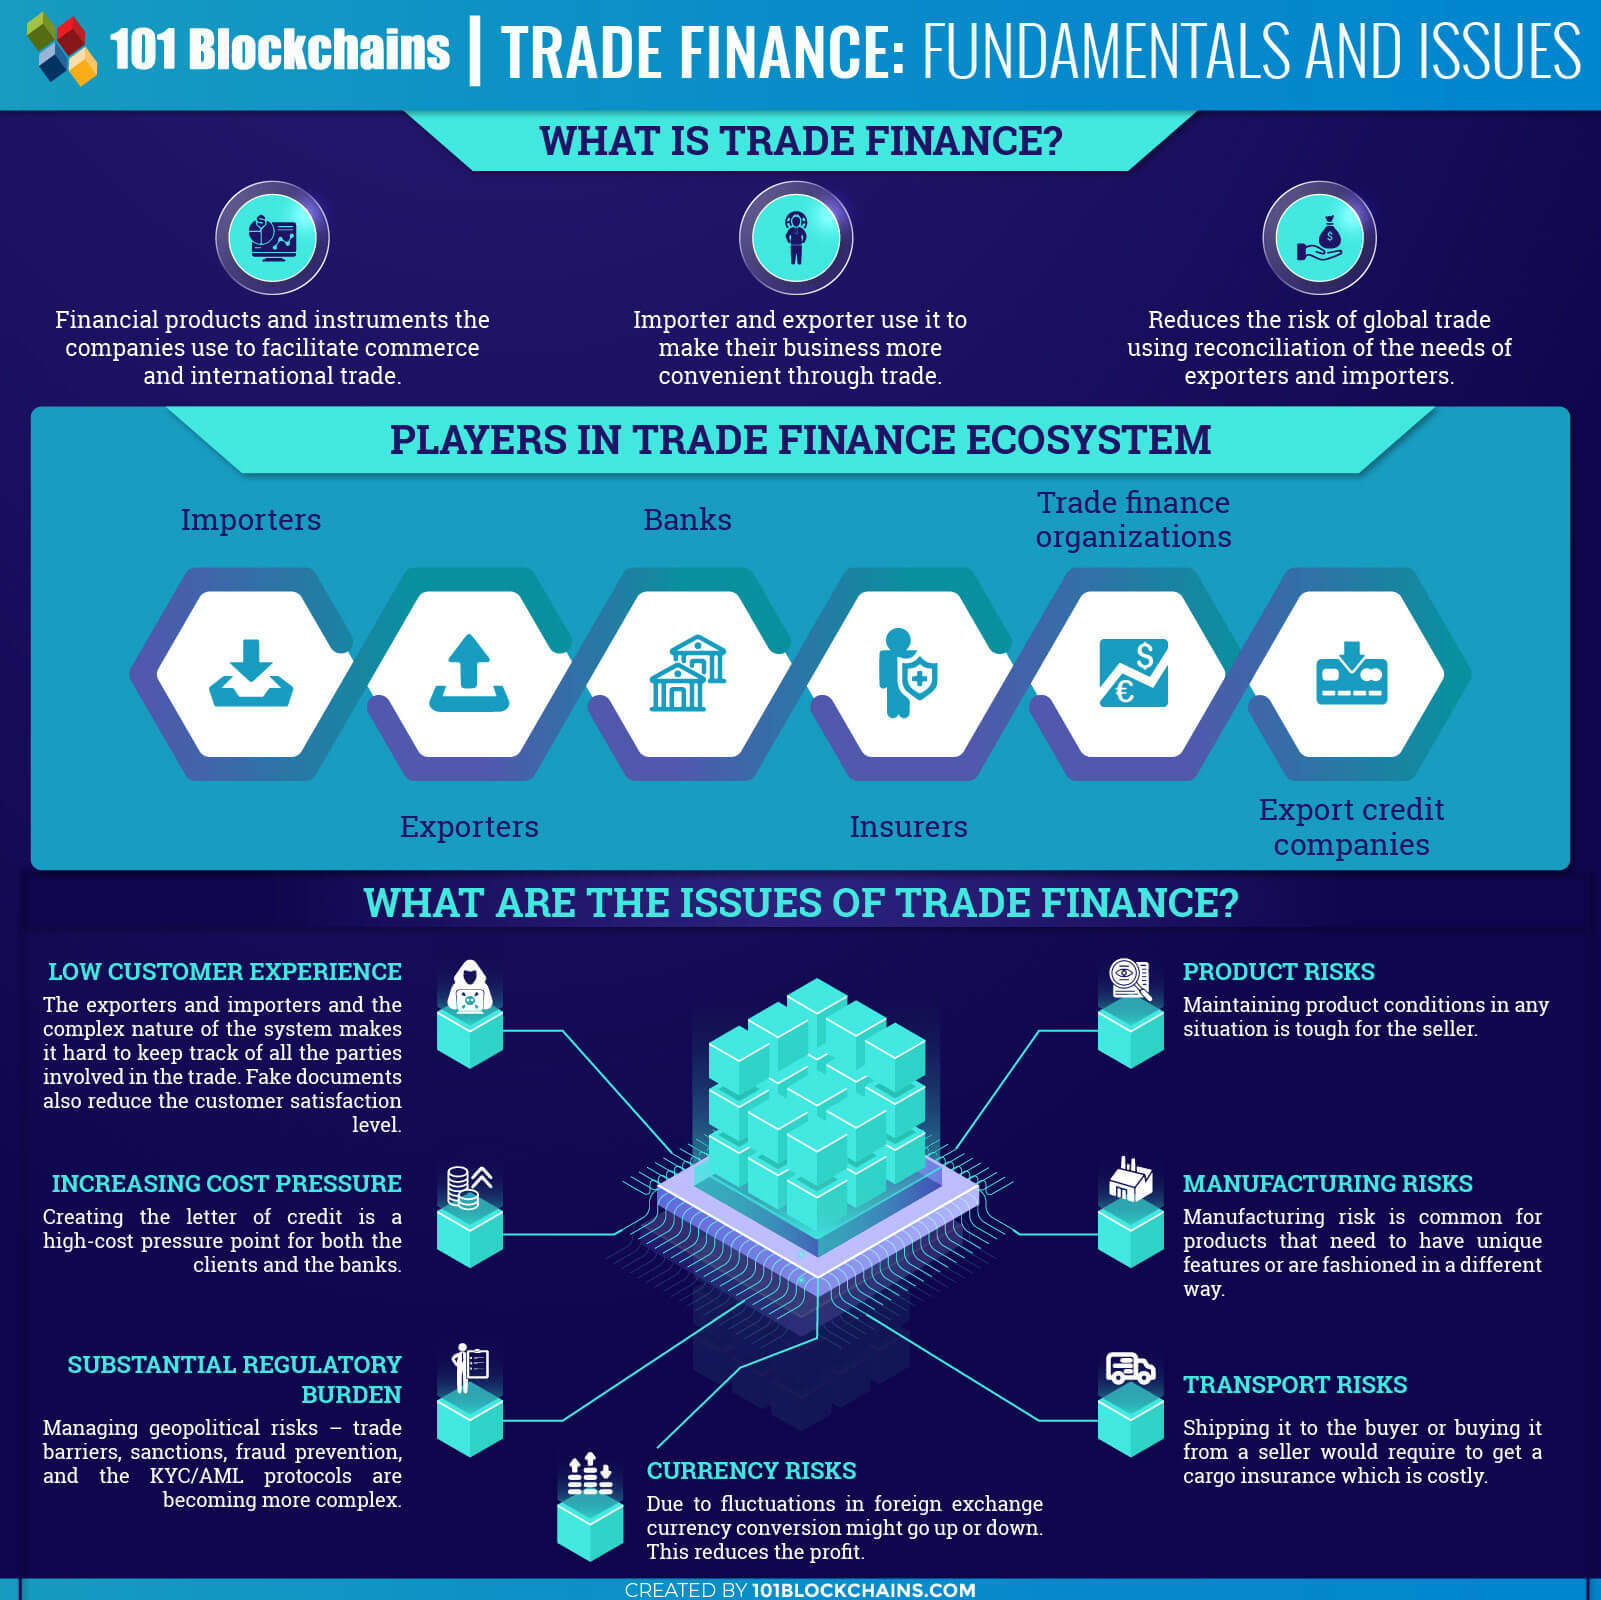 Blockchain for Trade Finance